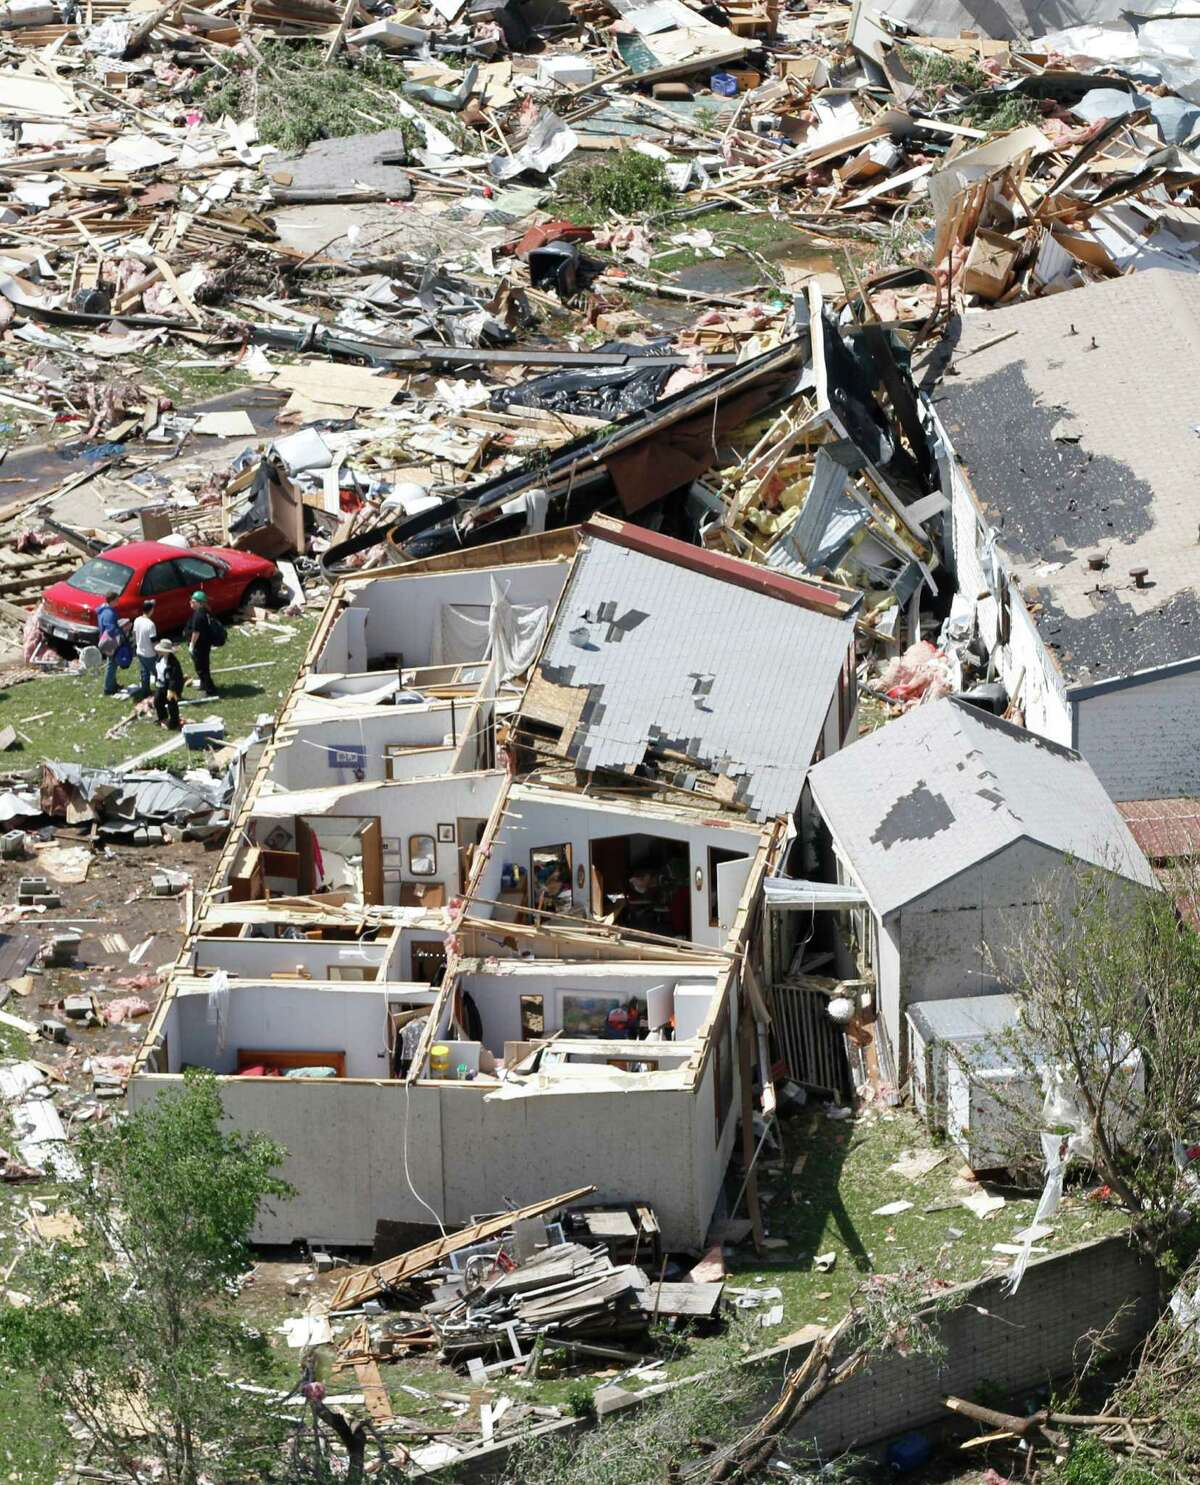 An aerial view of the destruction of the Oaklawn neighborhood in Wichita, Kansas, on Sunday, April 15, 2012. The damage was caused by one of several tornadoes that the state on Saturday, April 14, 2012. (AP Photo/Jeff Tuttle)